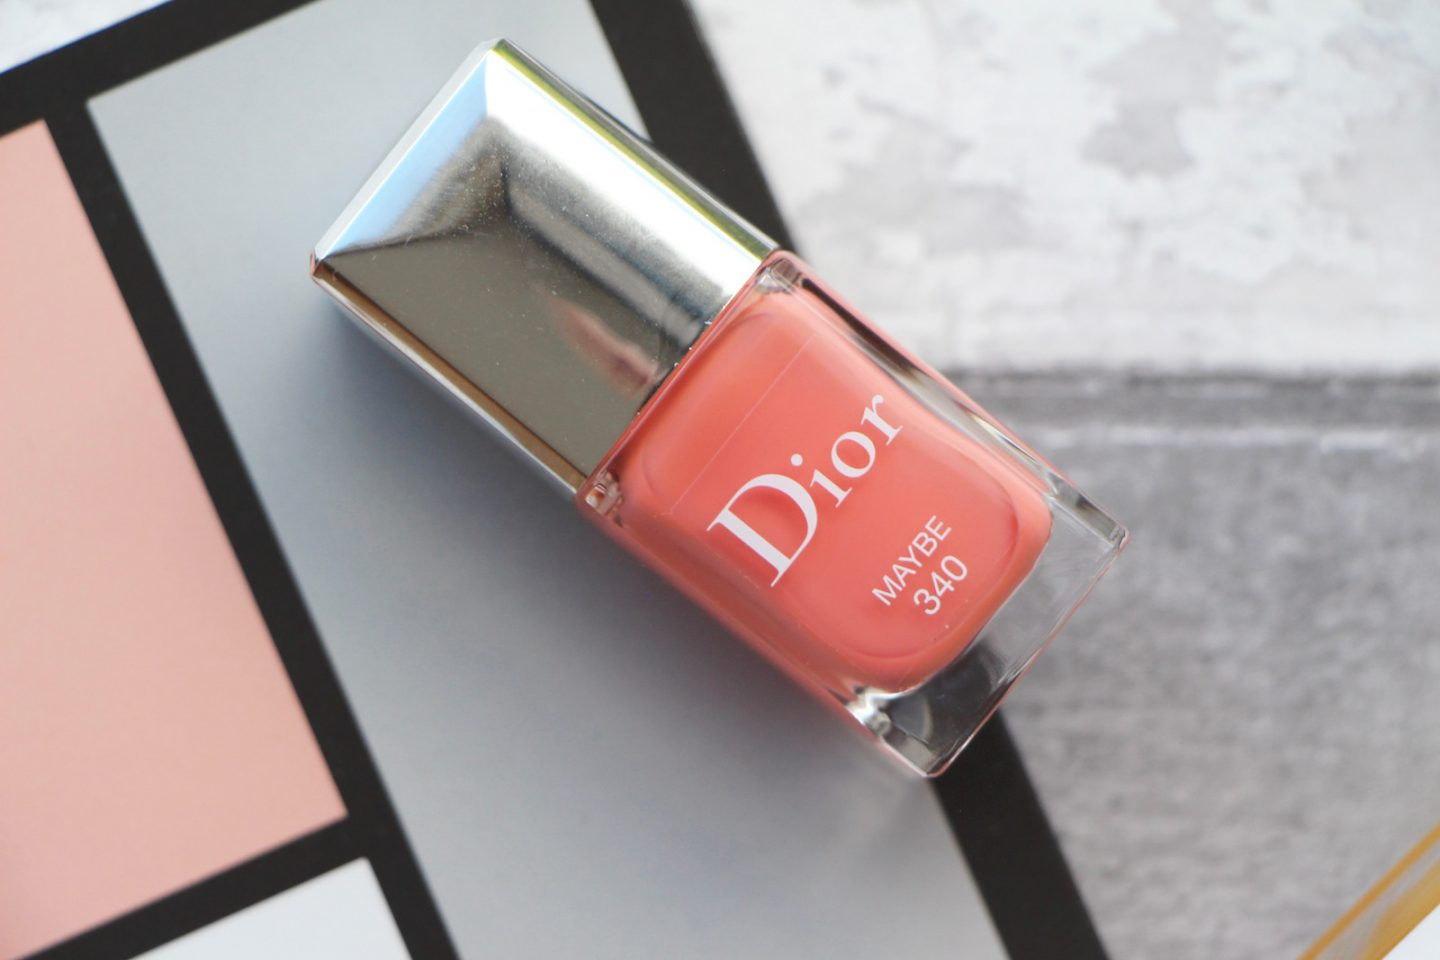 dior nail polish maybe